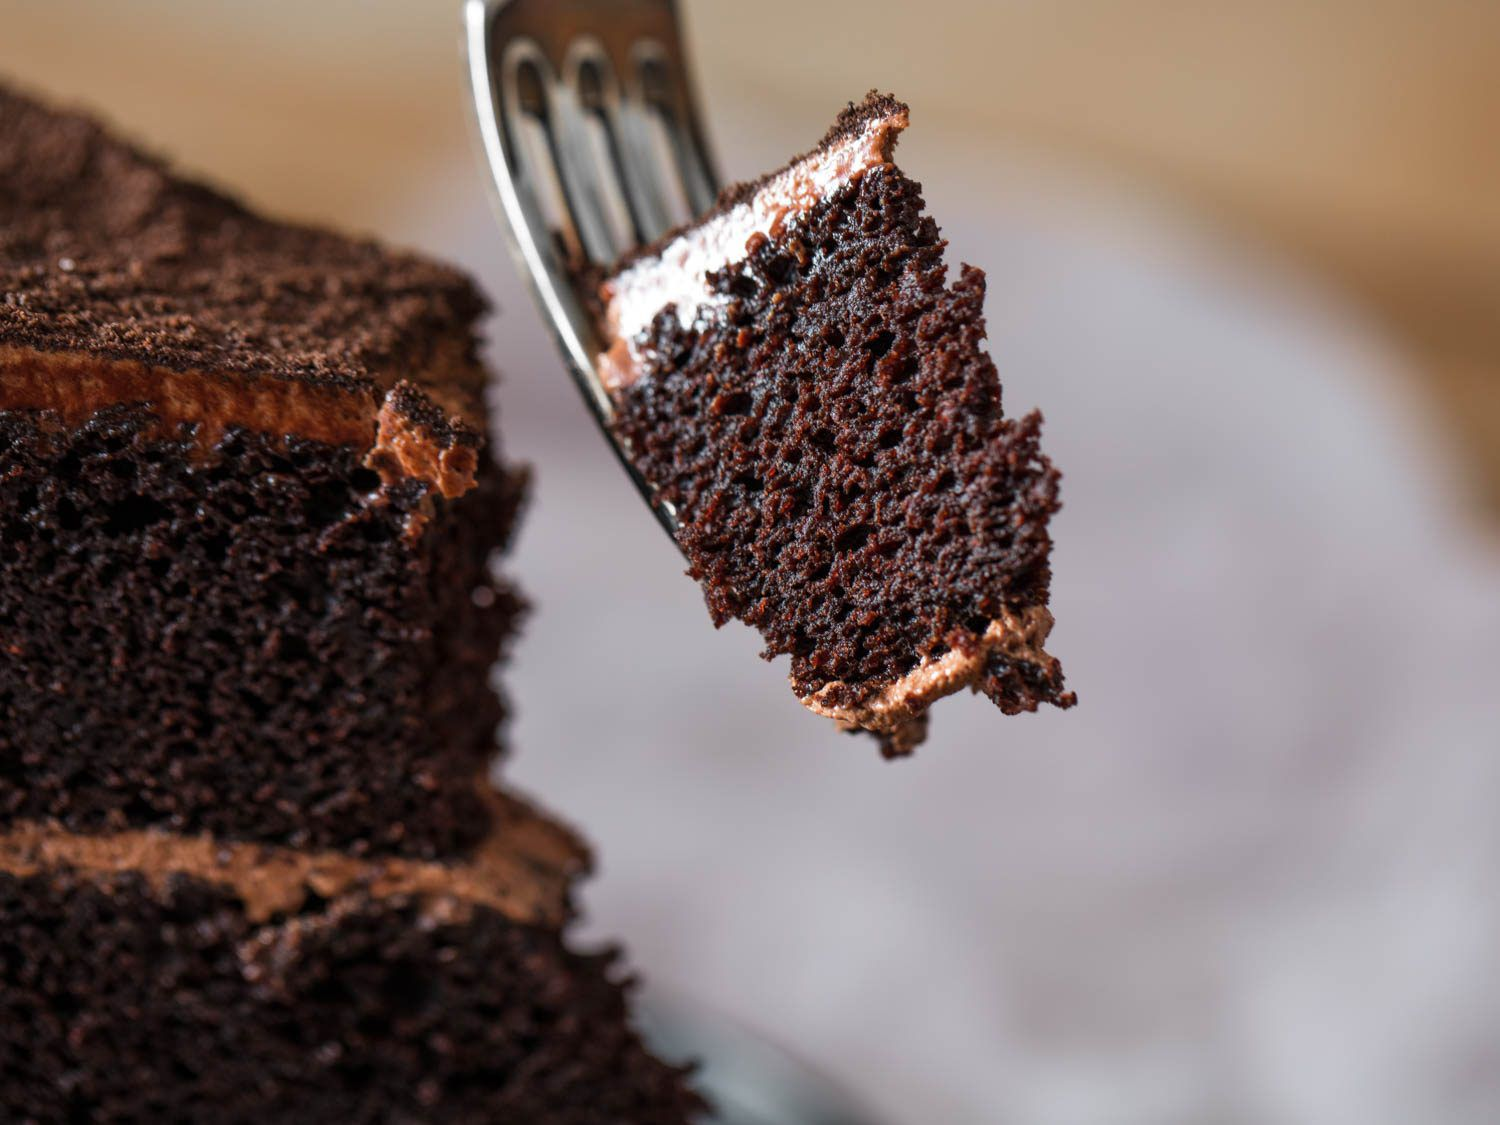 A fork pulling out a bite of chocolate Devil's food cake.